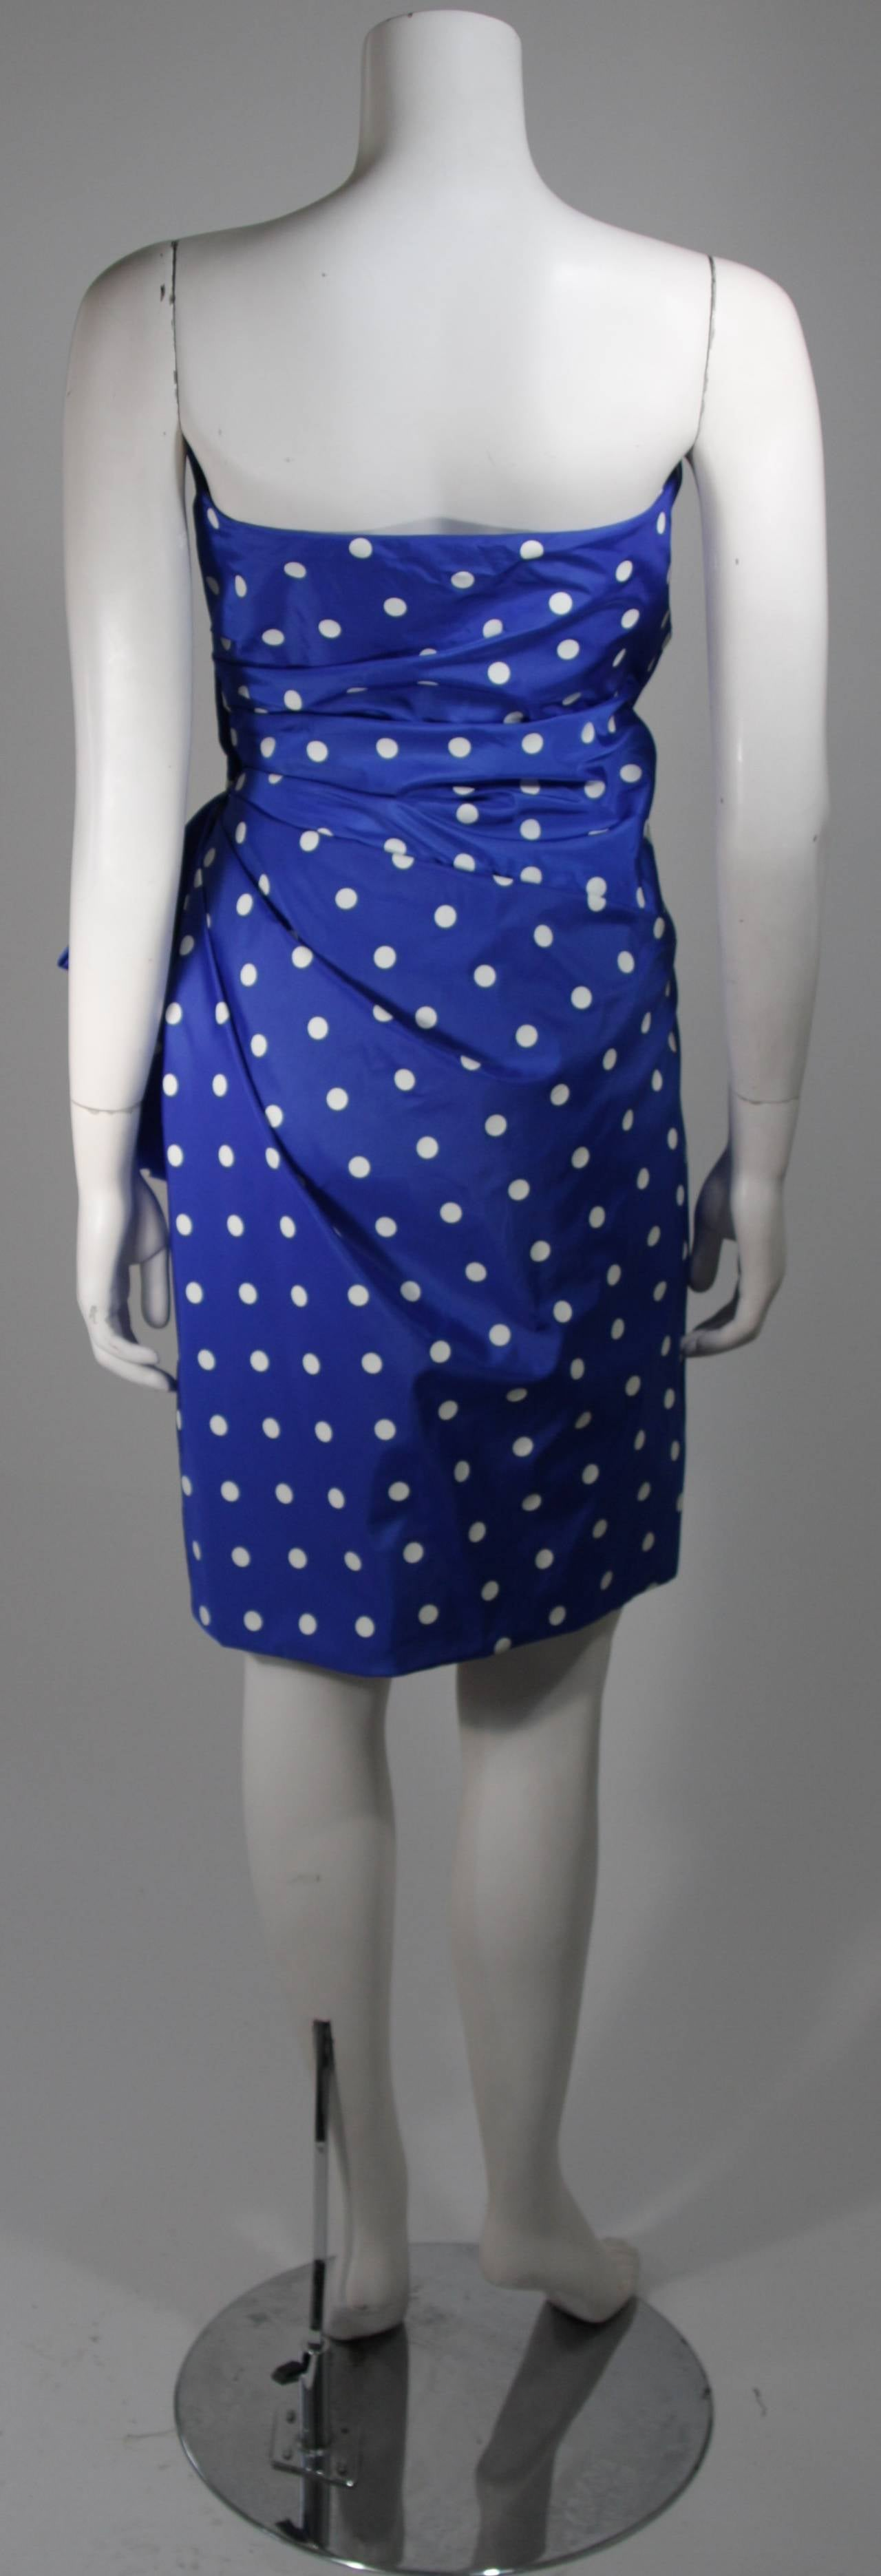 Victor Costa Royal Blue and White Polka Dot Cocktail Dress Size 8 For Sale 1